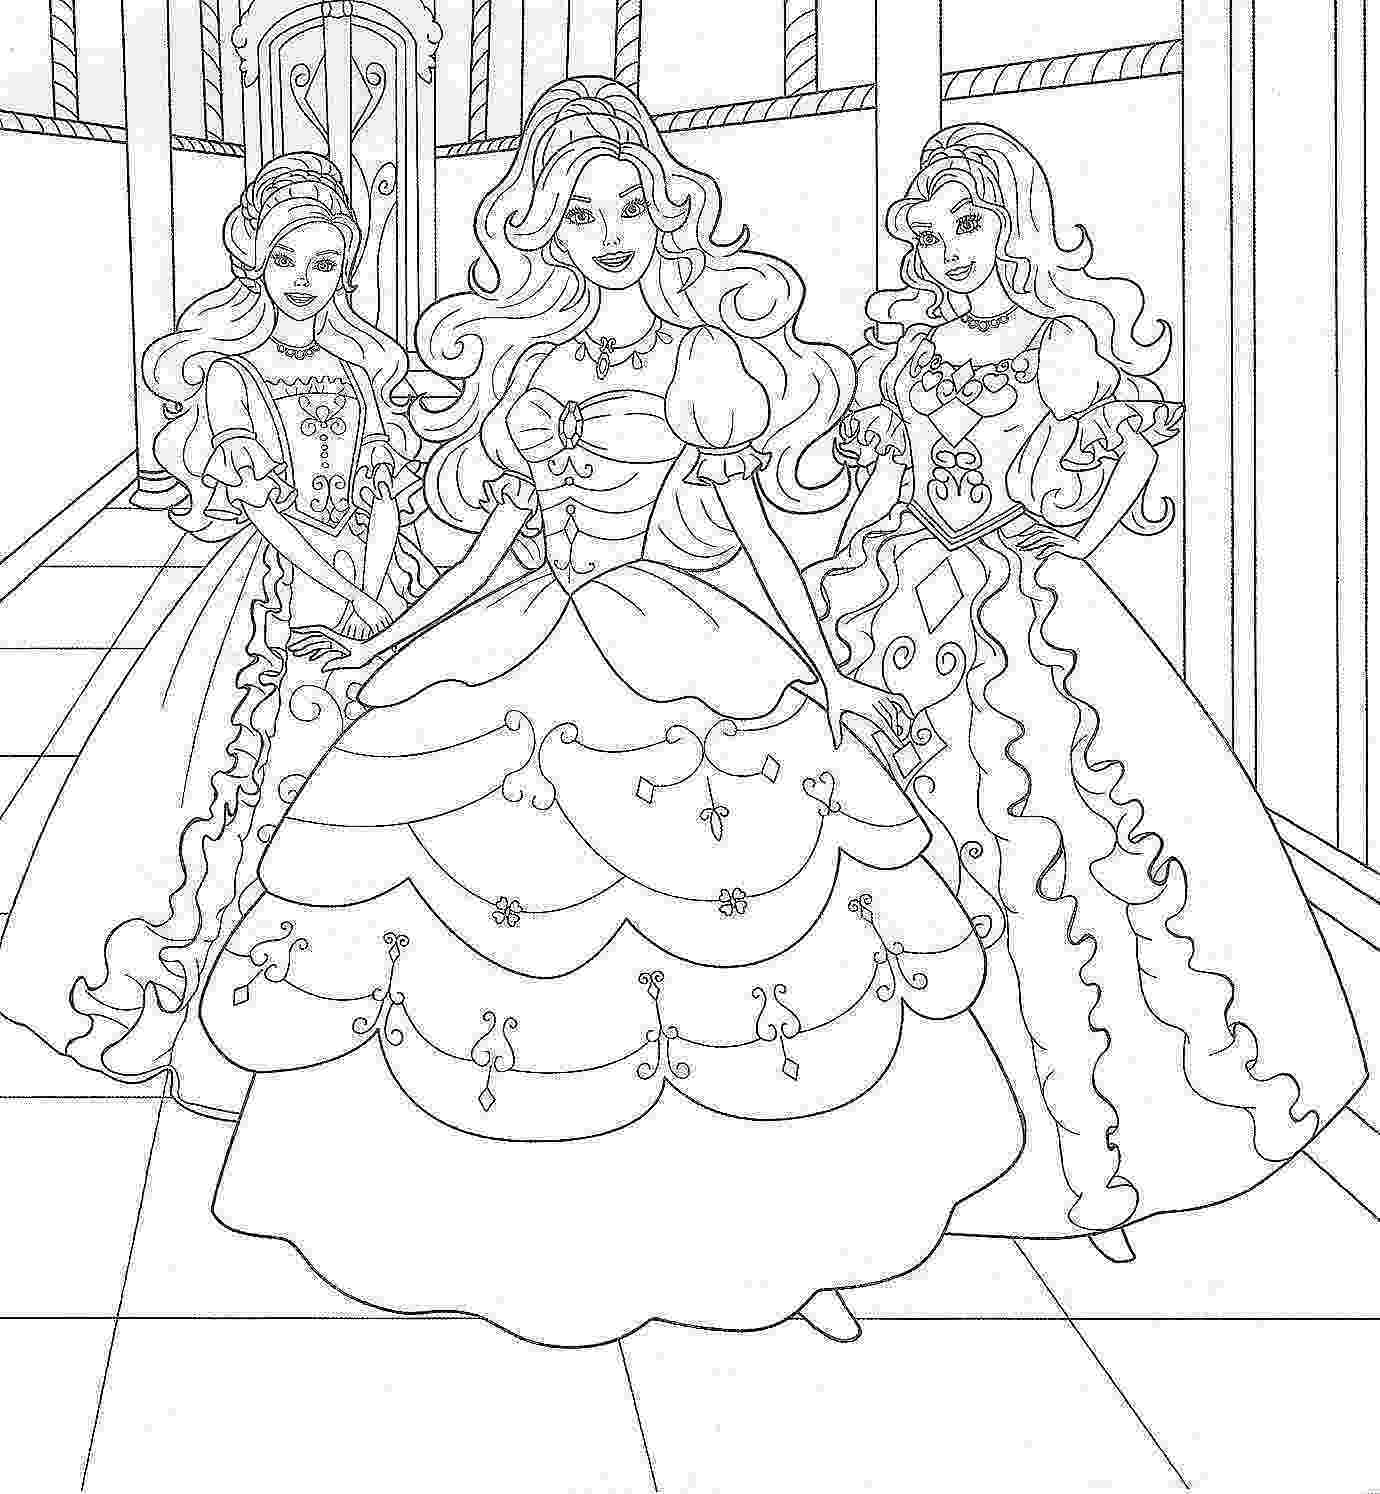 barbie color pages to print free printable barbie coloring pages for kids print pages barbie color to